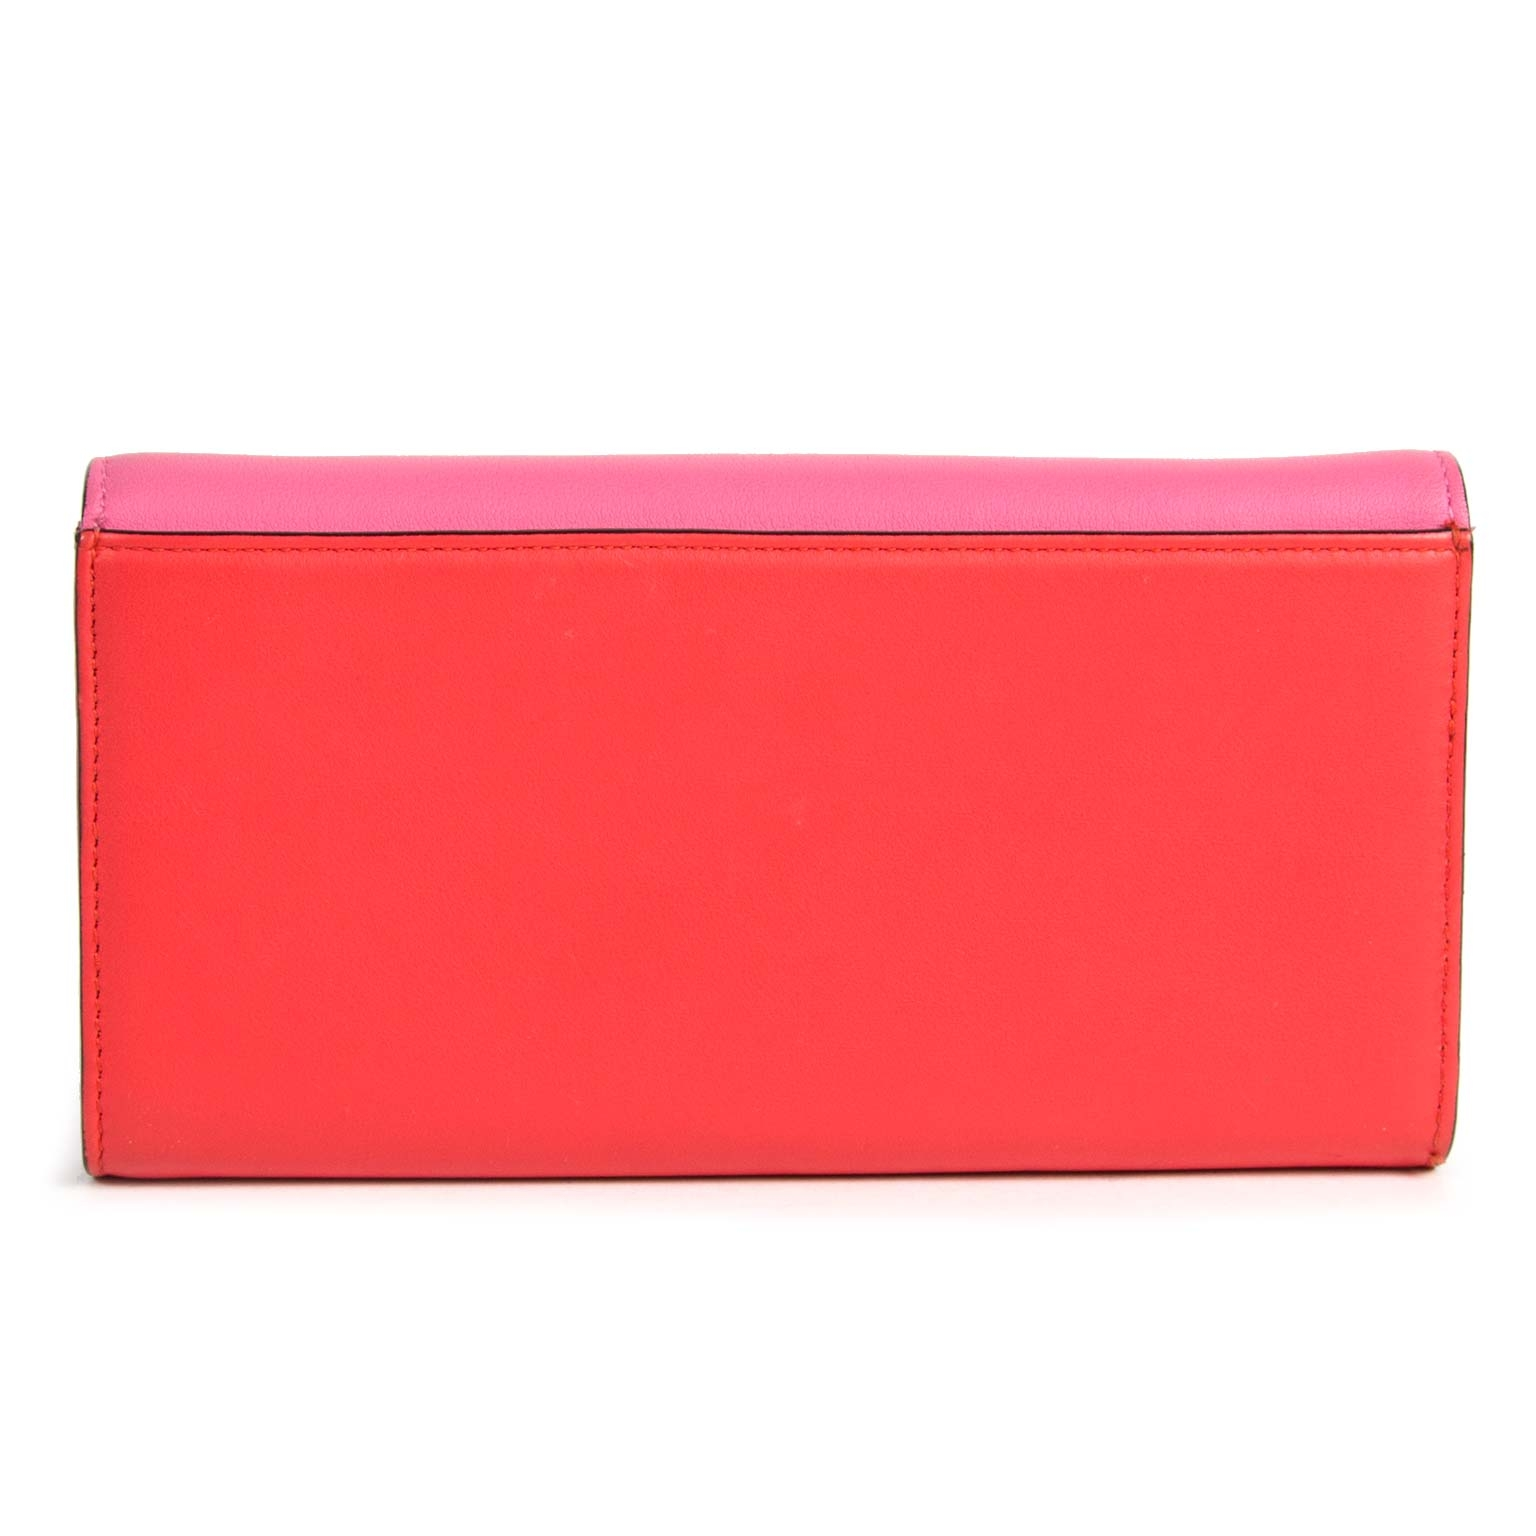 buy Christian Dior Leather Wallet Red And Pink an pay save online